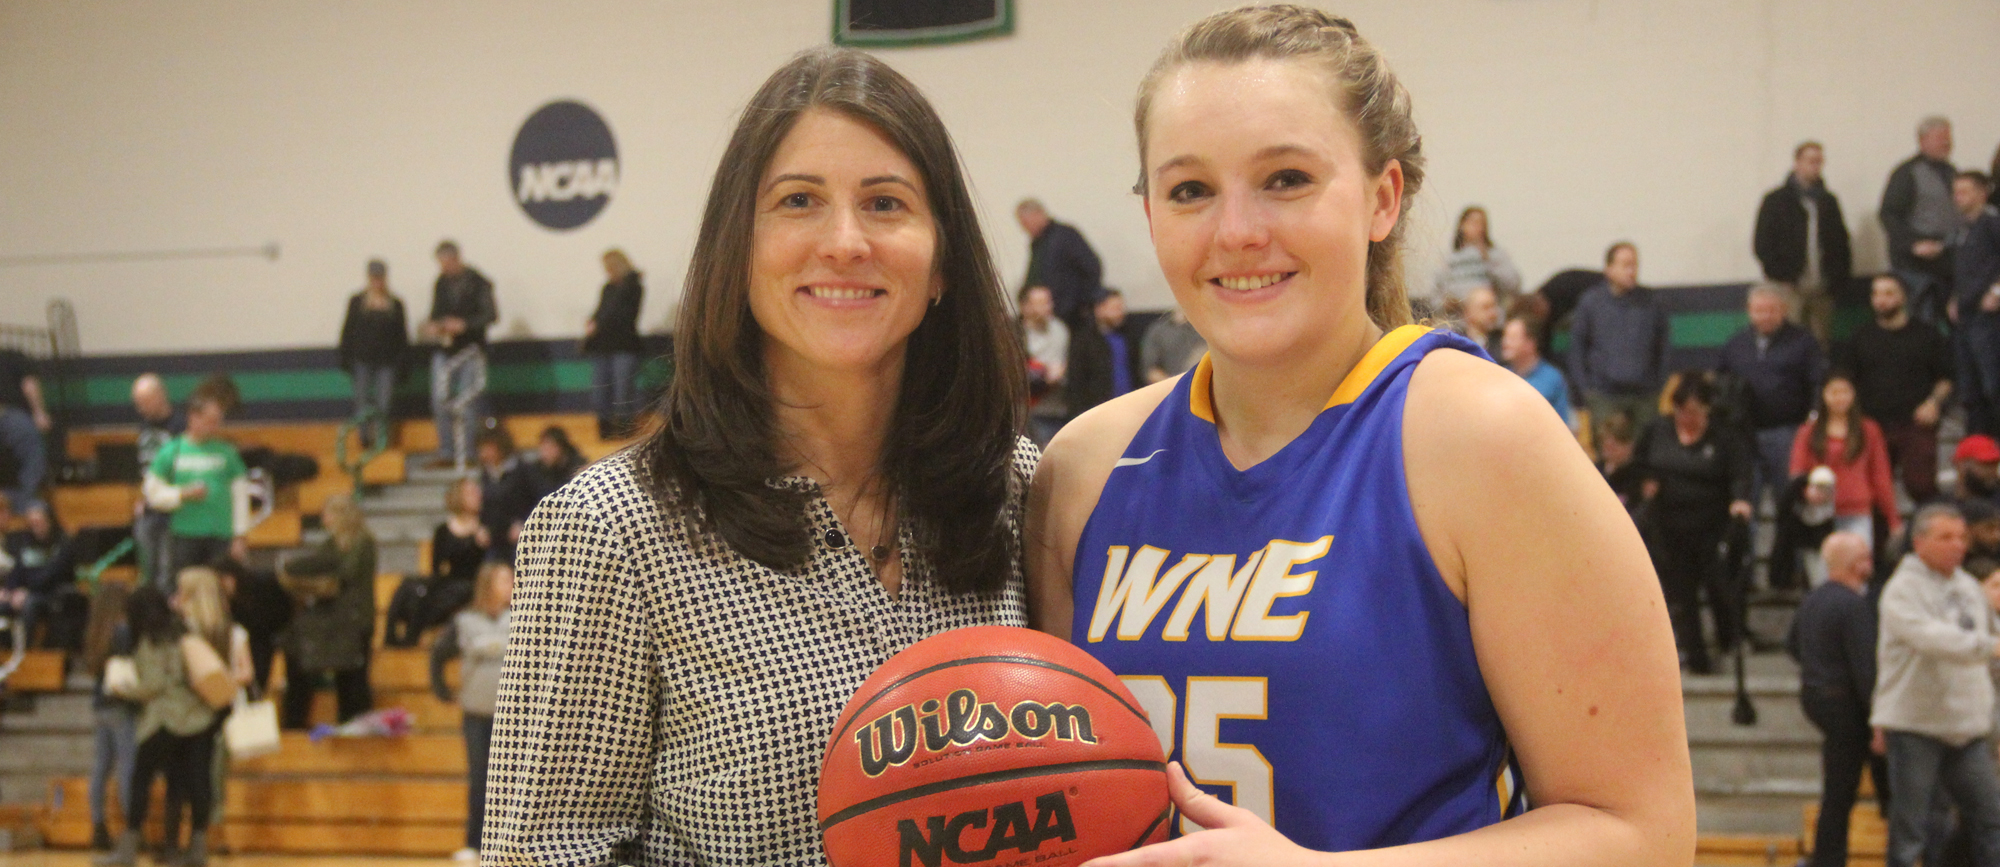 Anderson Reaches 1000-Point Milestone as Golden Bears Drop Regular Season Finale at Endicott, 71-60